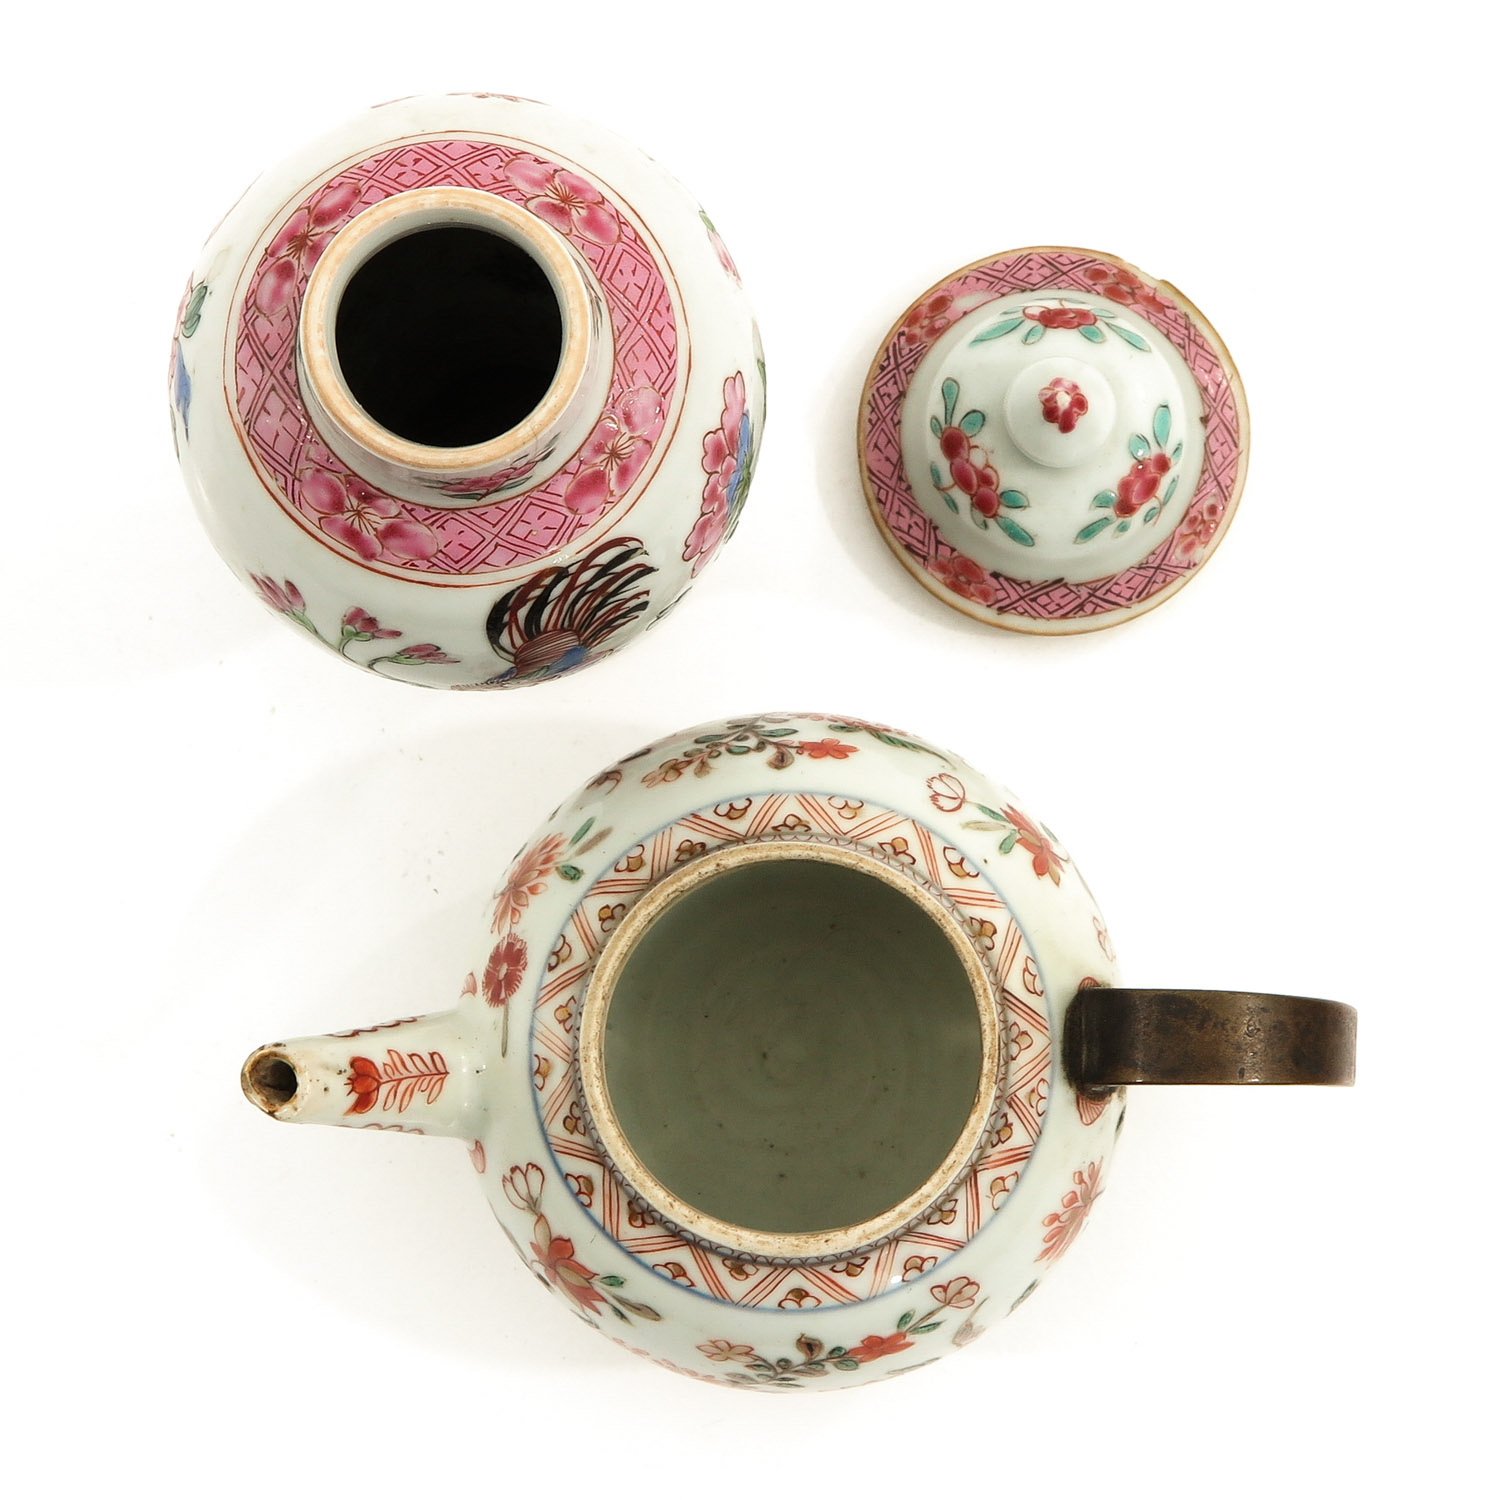 A Famille Rose Vase and Teapot - Image 5 of 9